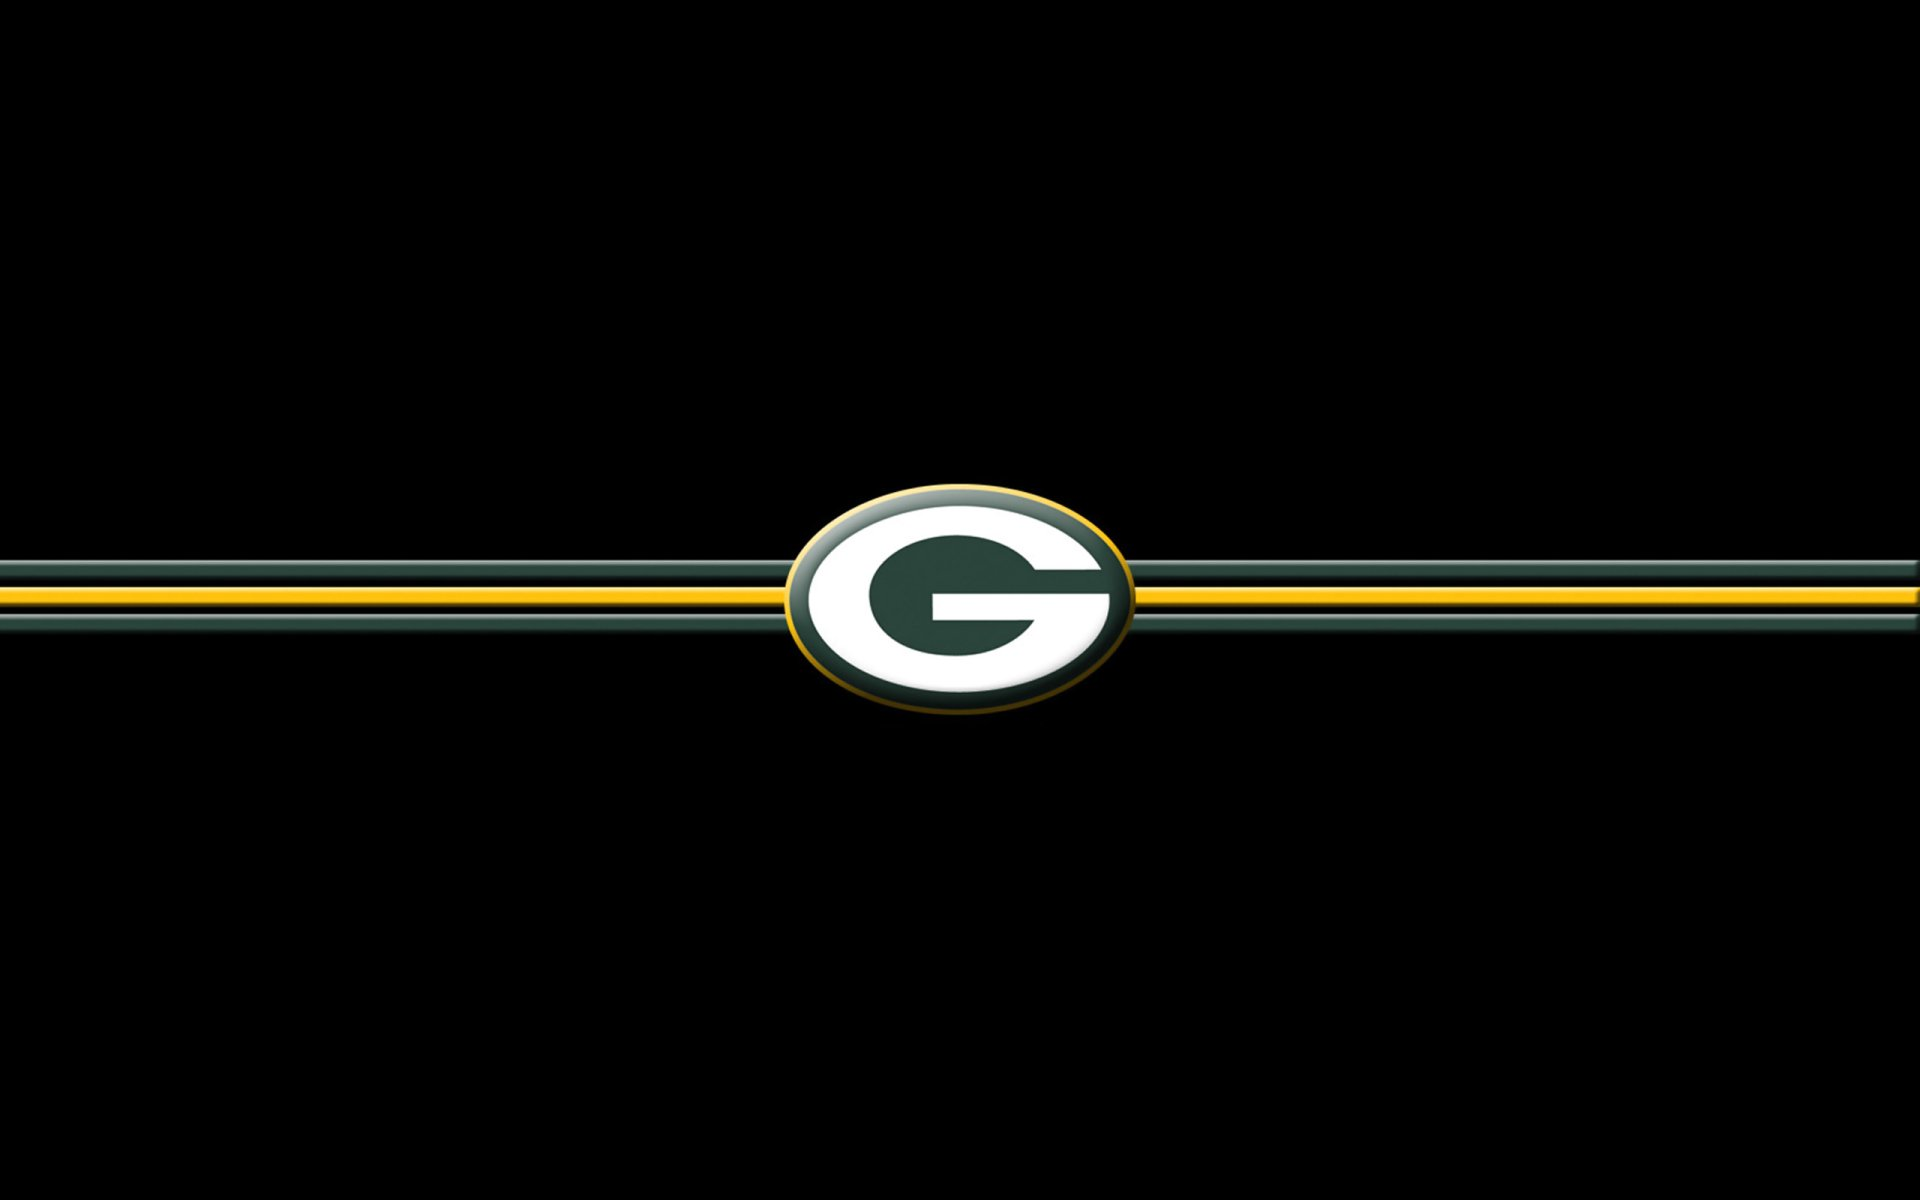 Green Bay Packers Iphone X Wallpaper Green Bay Packers Full Hd Wallpaper And Background Image